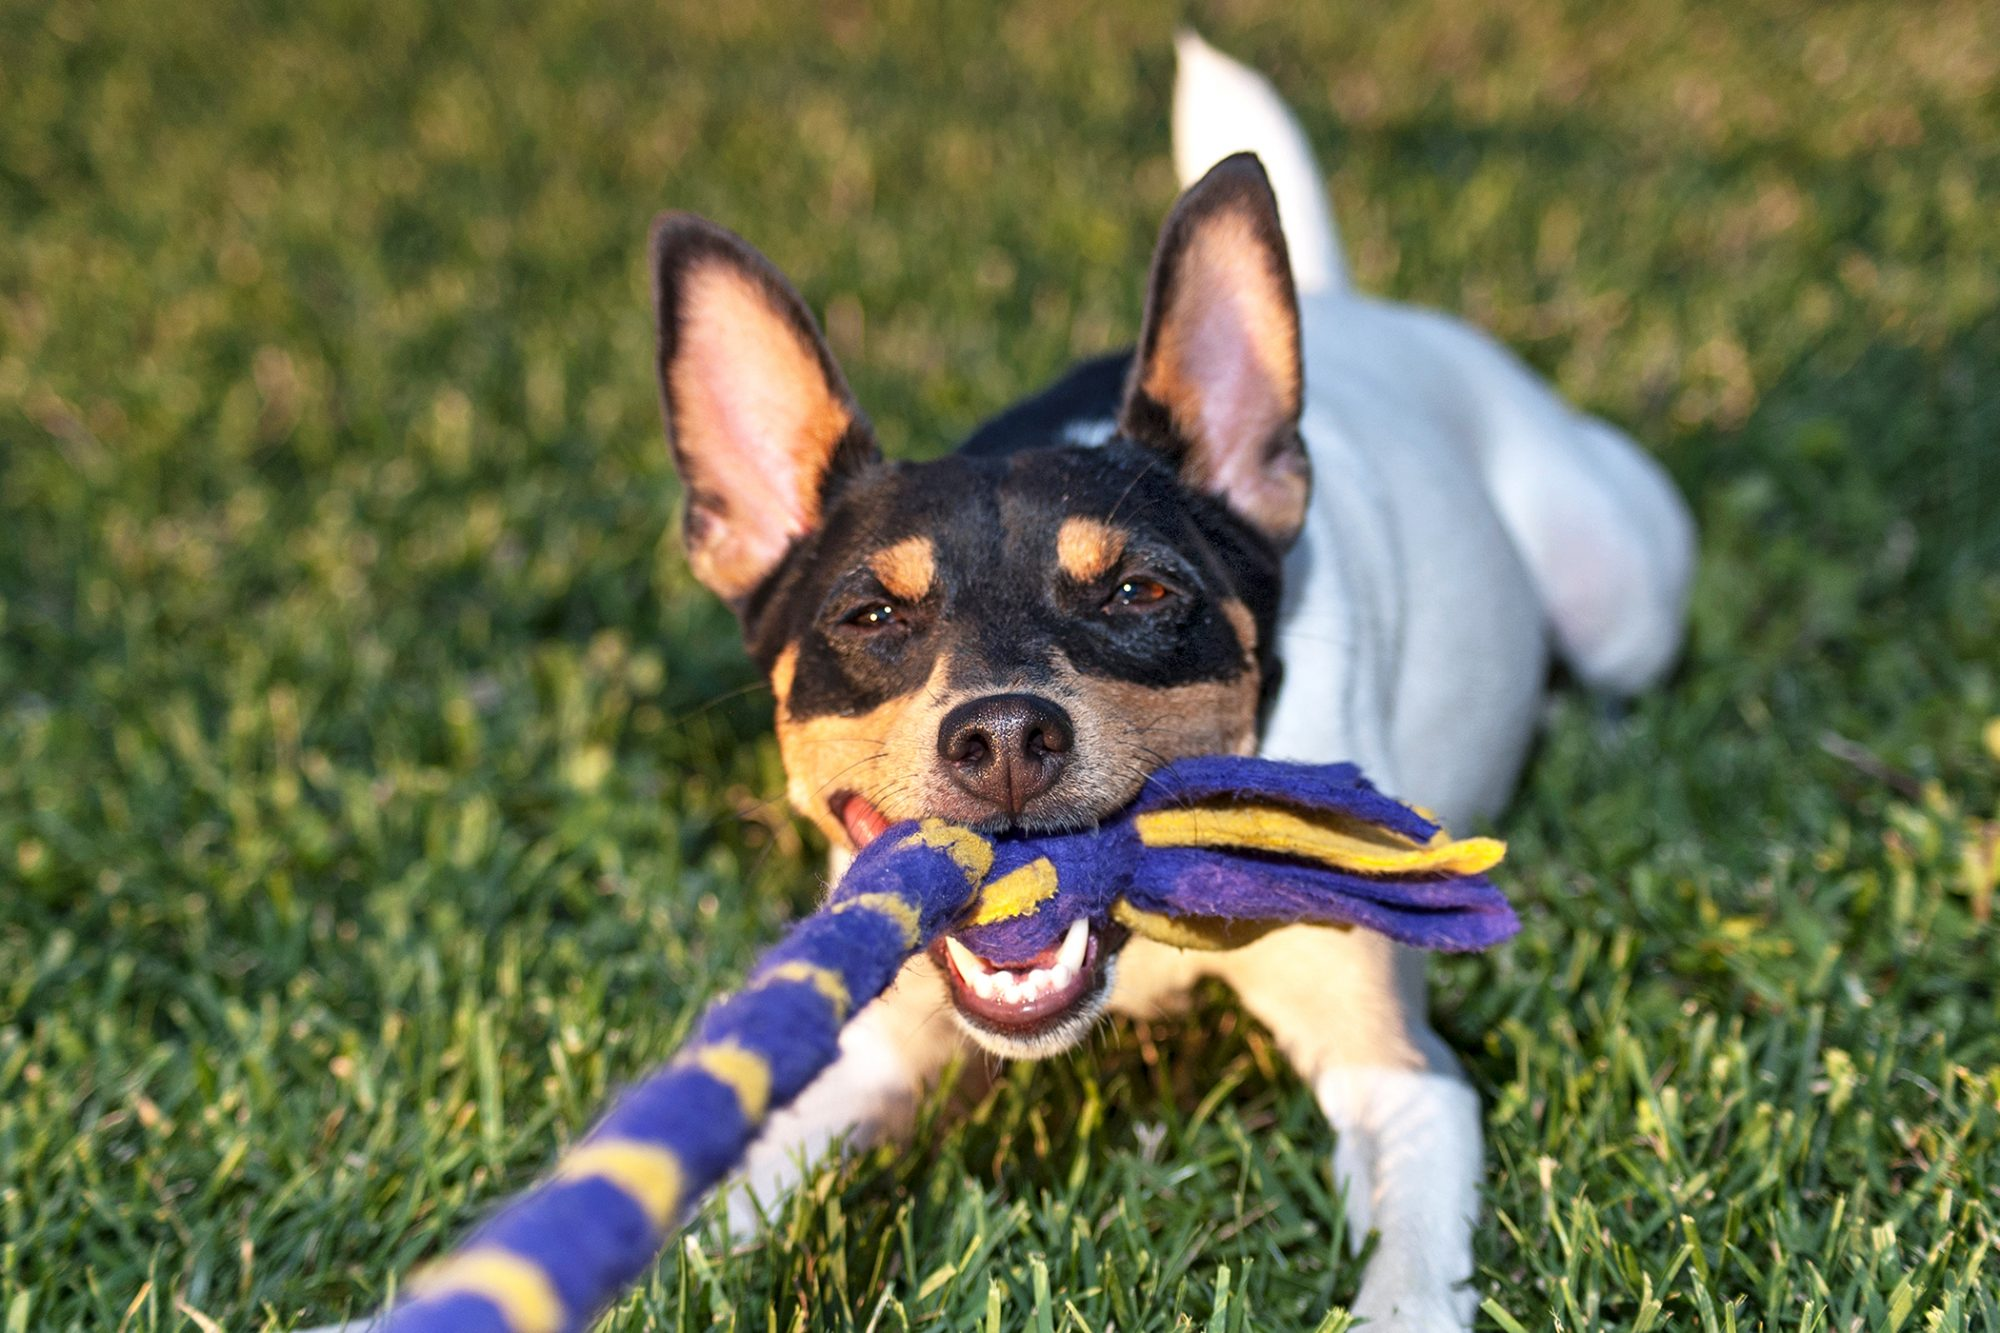 Toy fox terrier plays tug of war in grass with purple and yellow rope